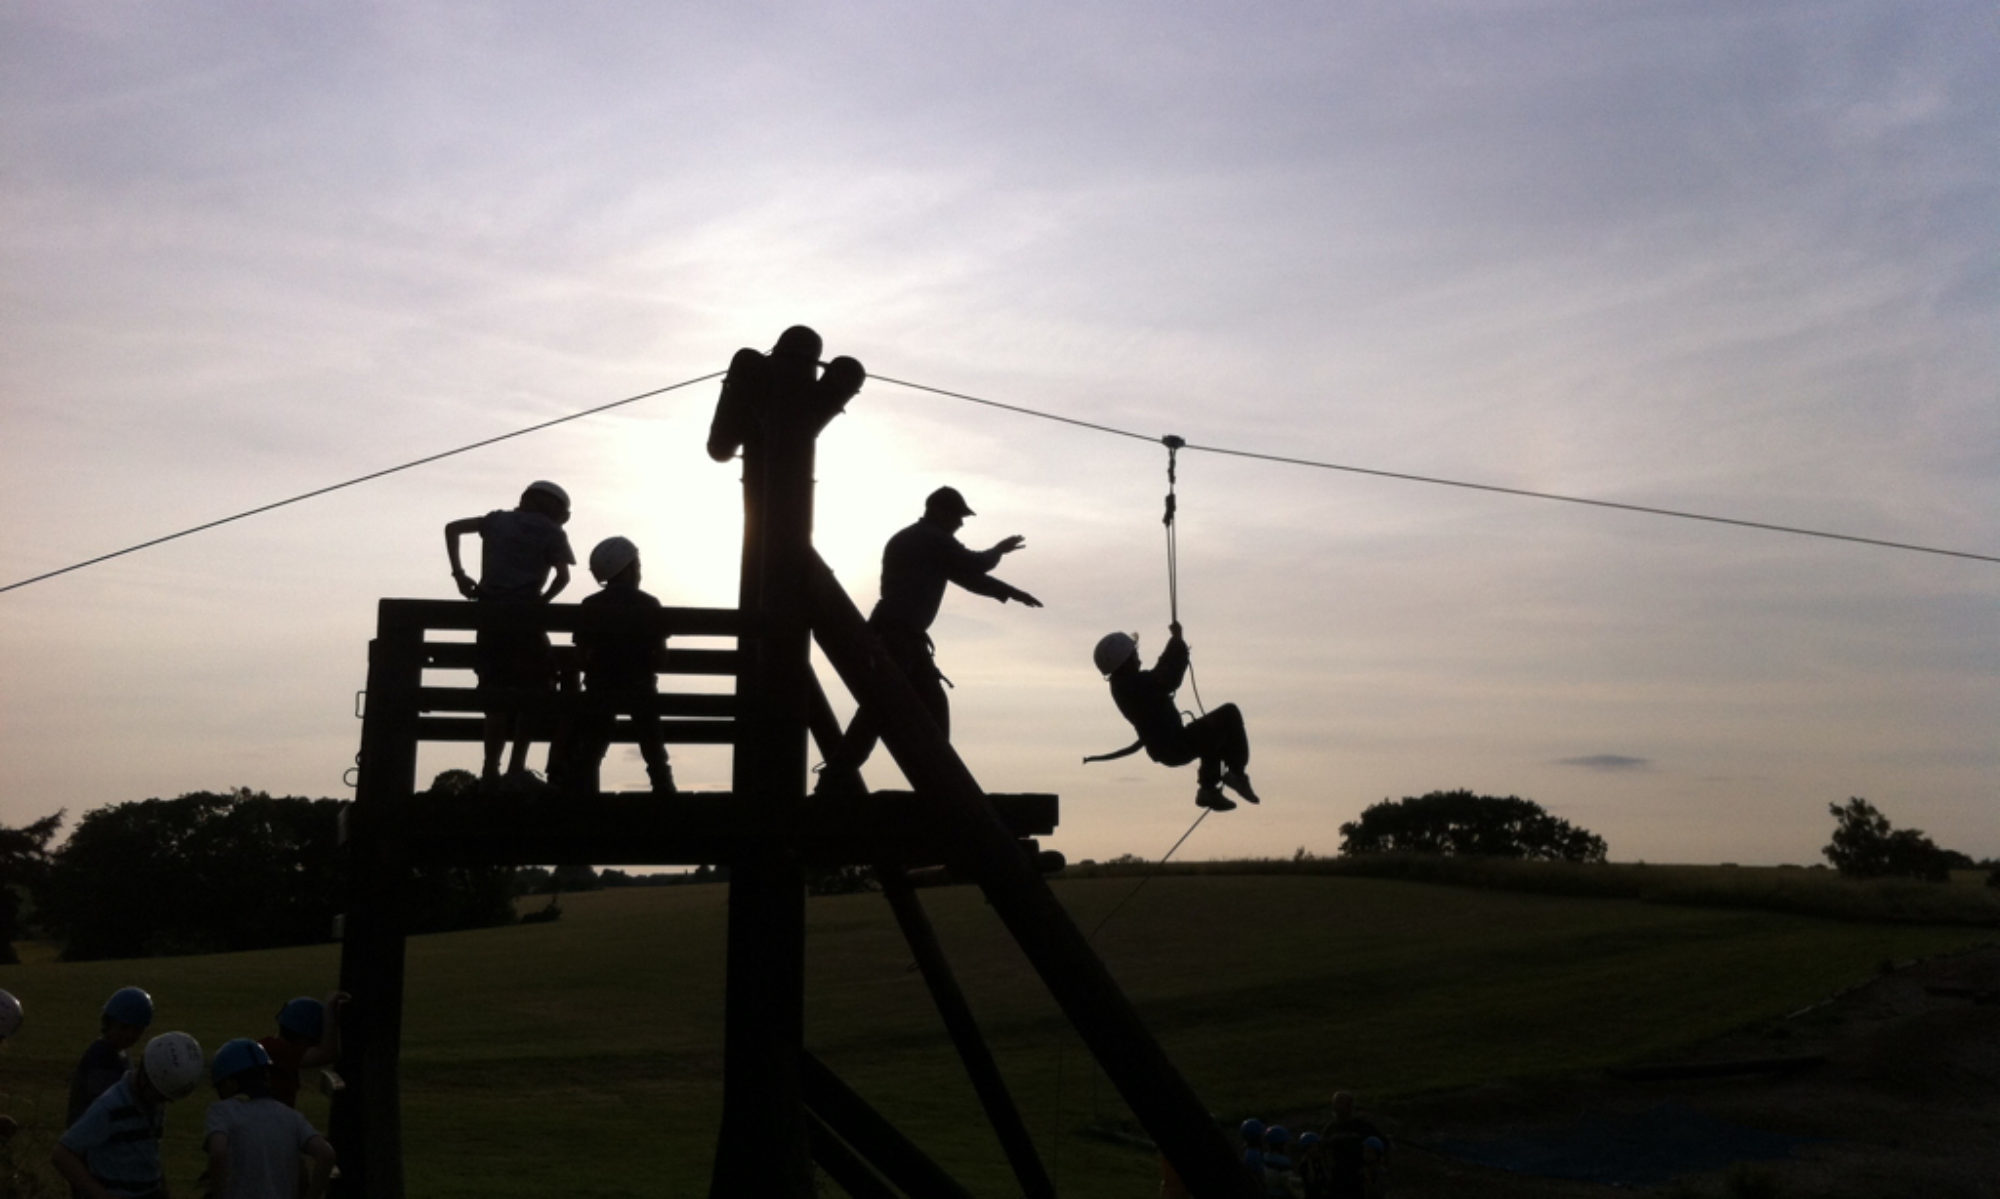 Silhouette of Scouts on a zipwire